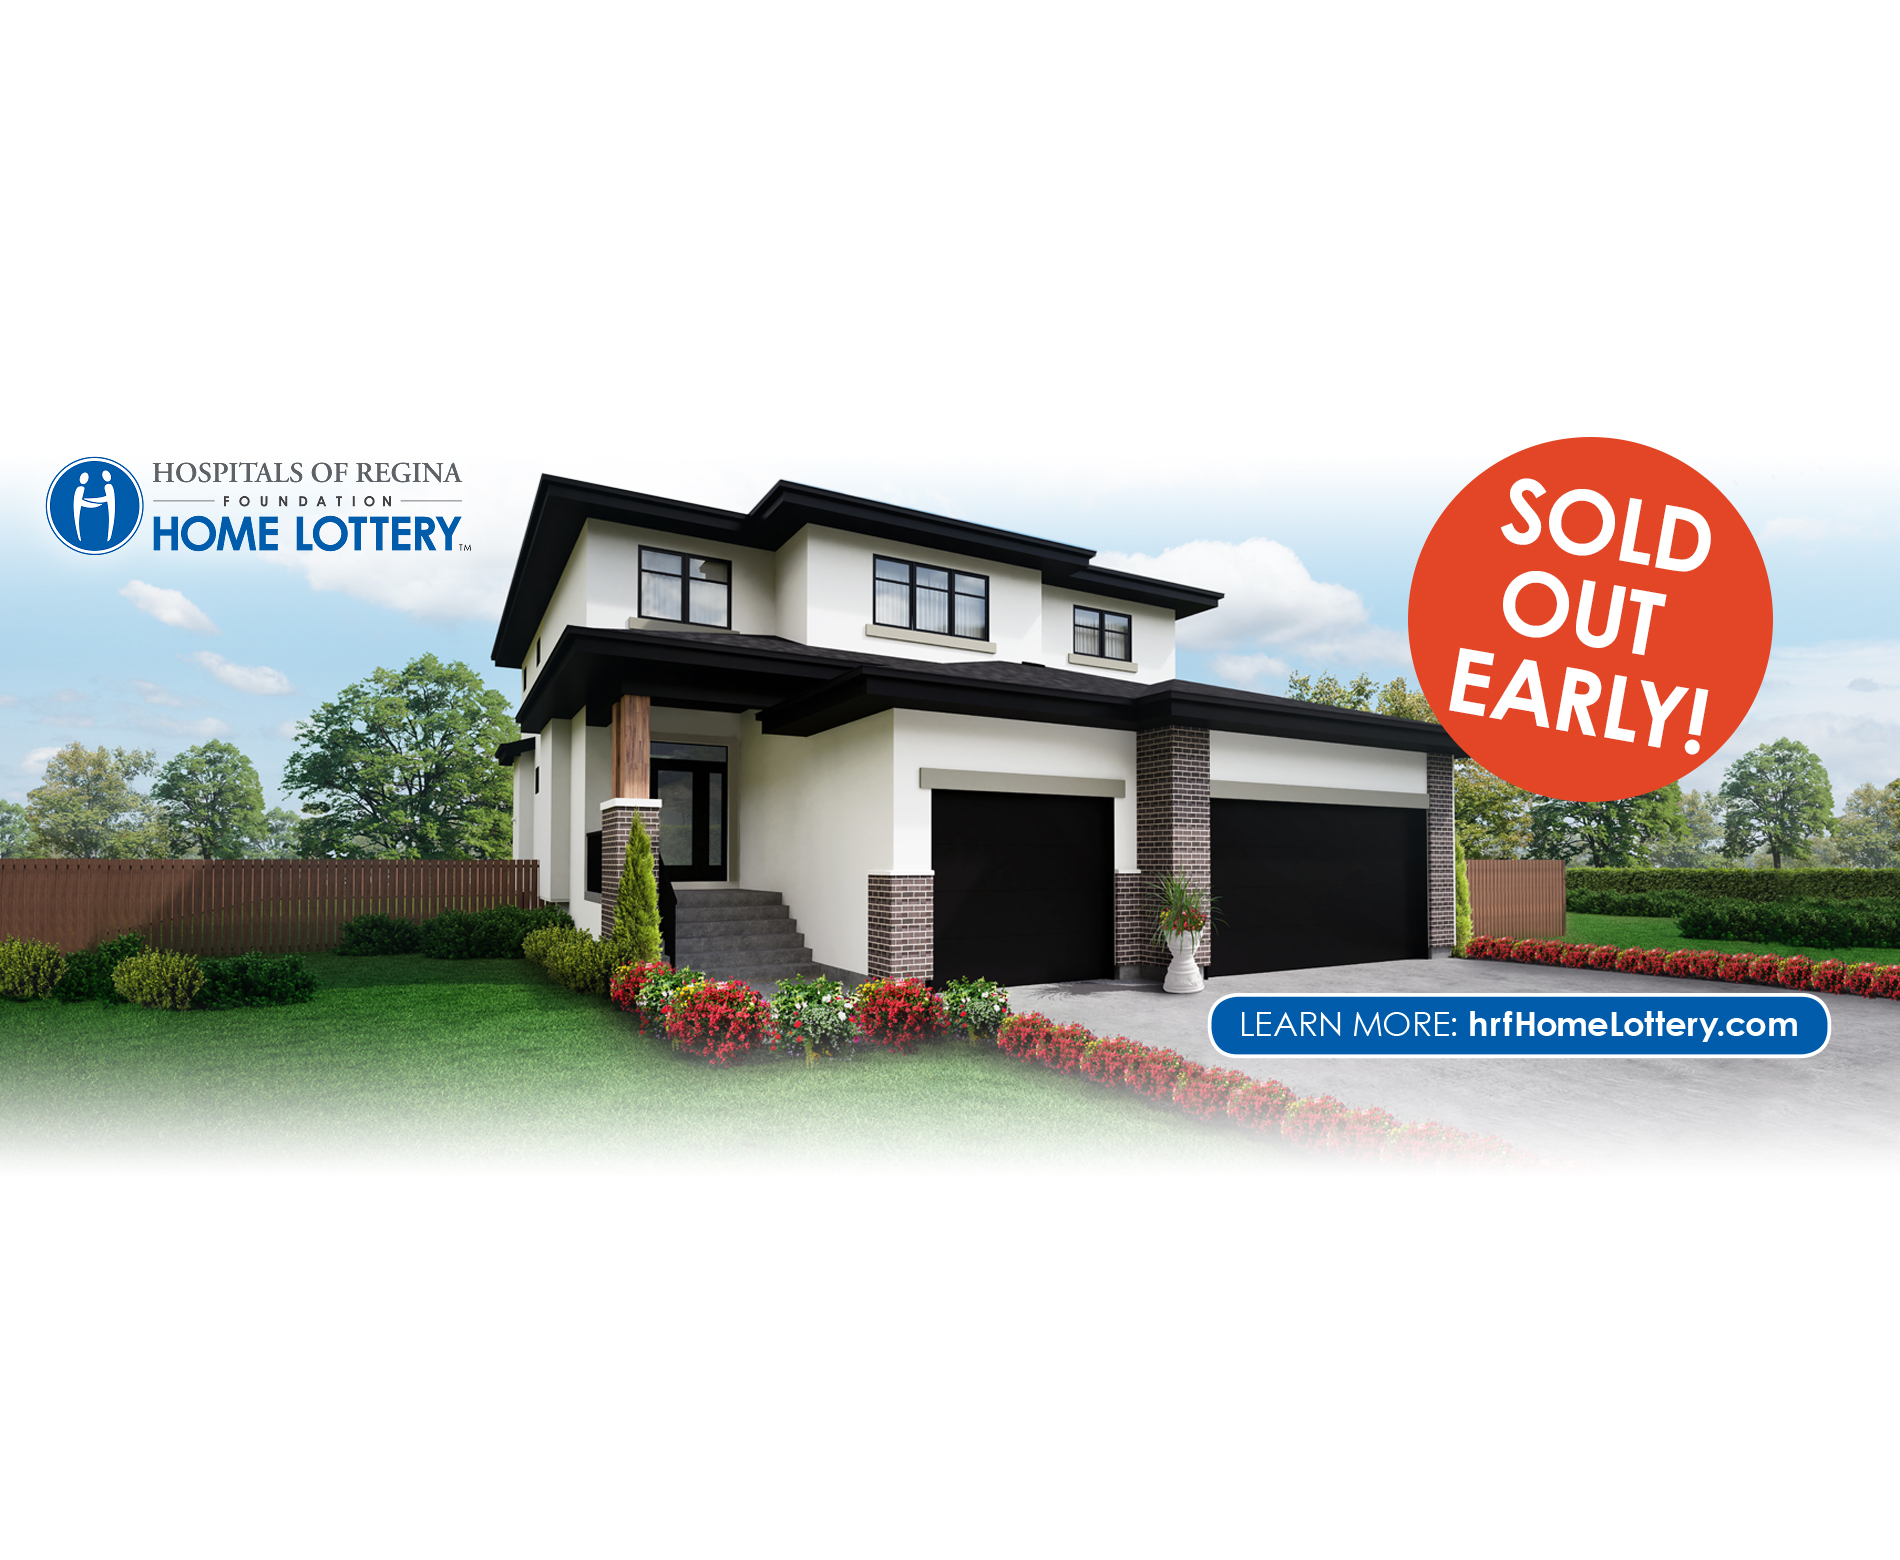 Hospitals of Regina Foundation Fall 2018 Home Lottery has sold out early